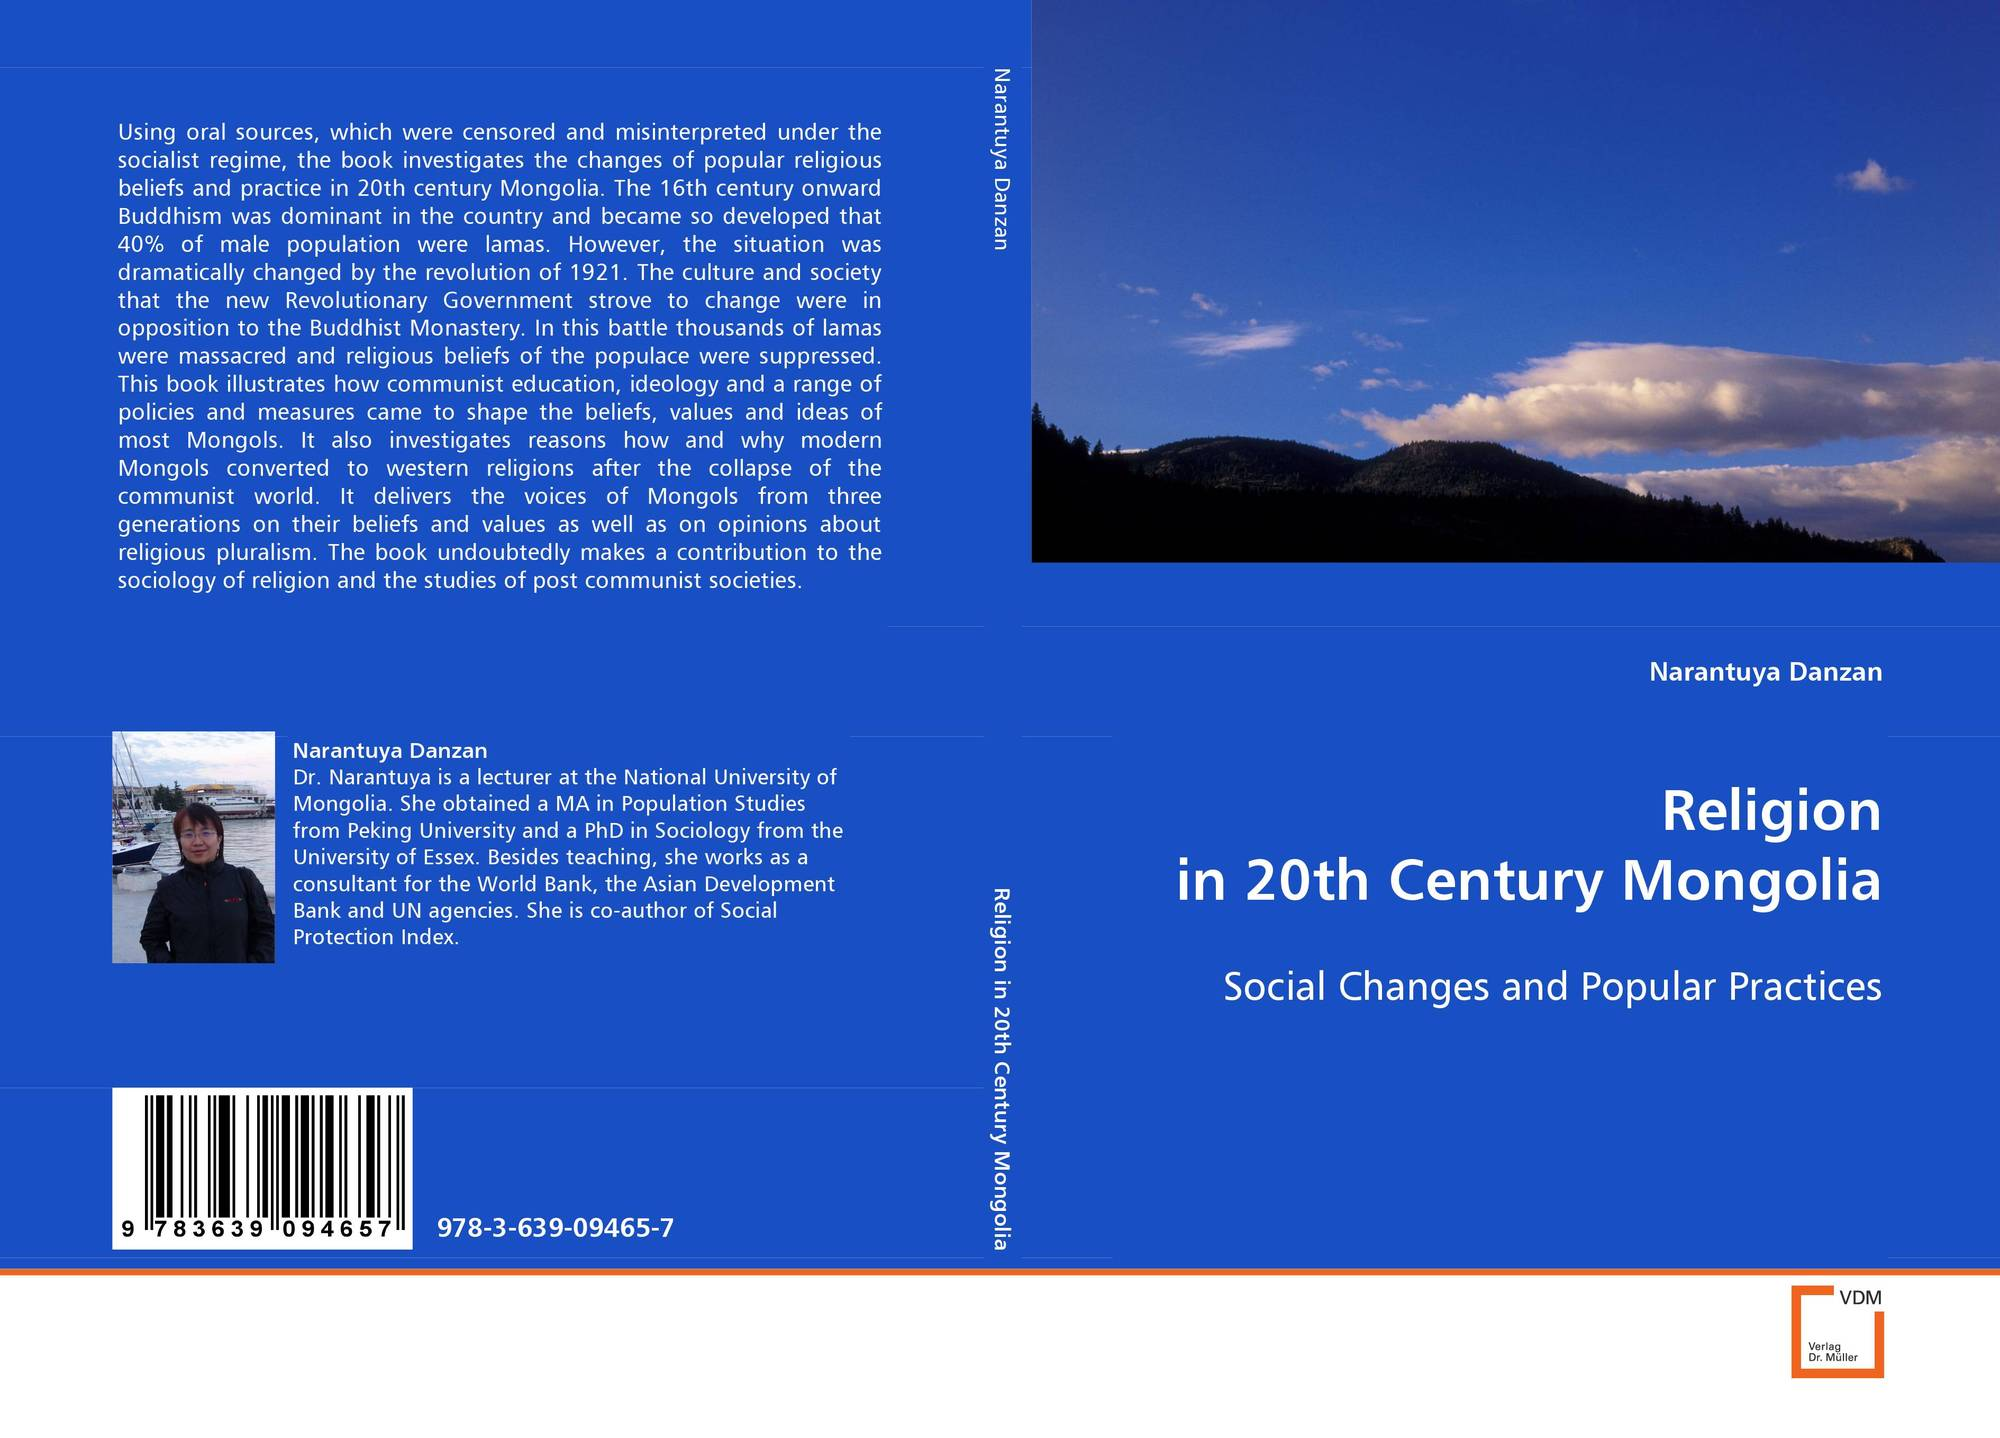 the contribution of religion to societies and cultures in the 20th century To study religion in the south, then, is to examine the influence of a dominant evangelical culture that has shaped the region's social mores, religious minorities (including catholicism, judaism, and non-christian immigrant religions), cultural forms, charged racial interactions, and political practices.